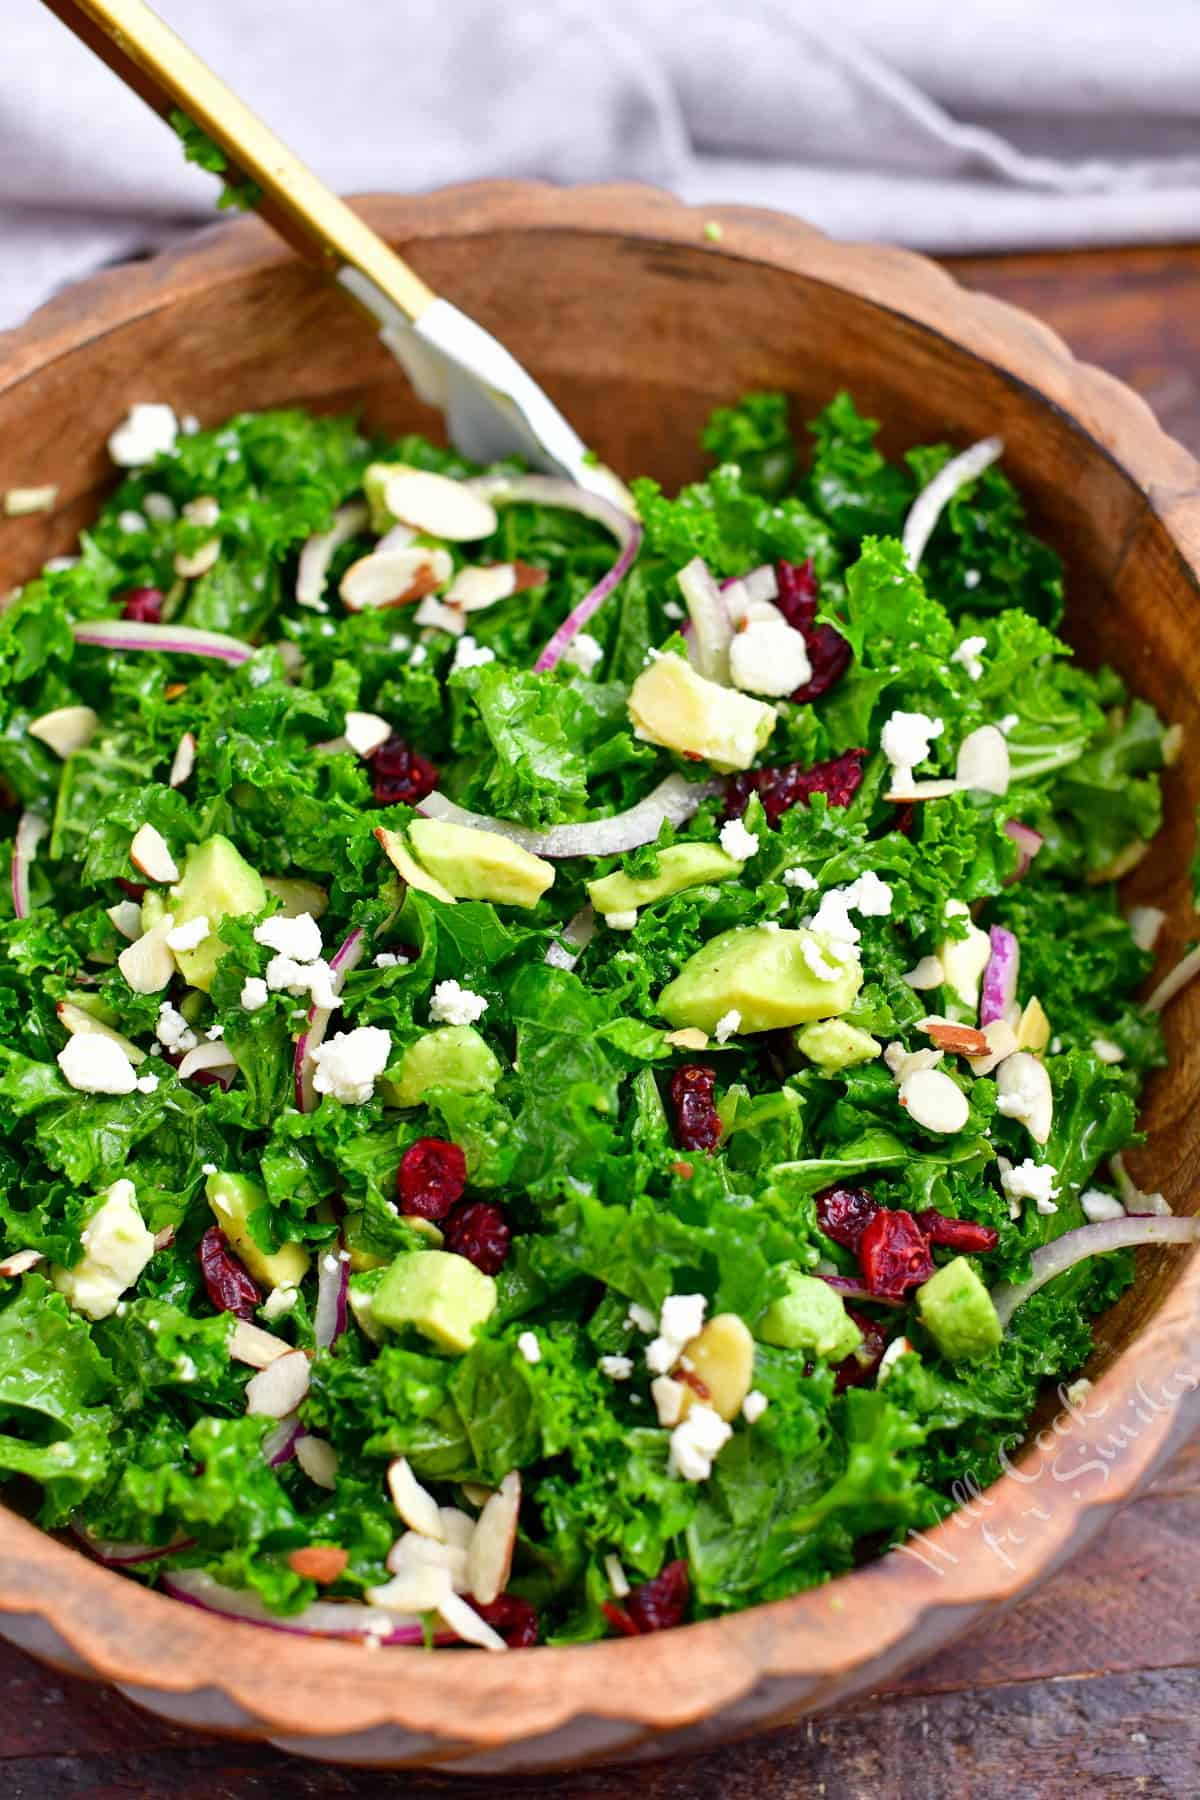 kale salad with almonds, avocado, dried cranberries, and feta cheese in wooden bowl